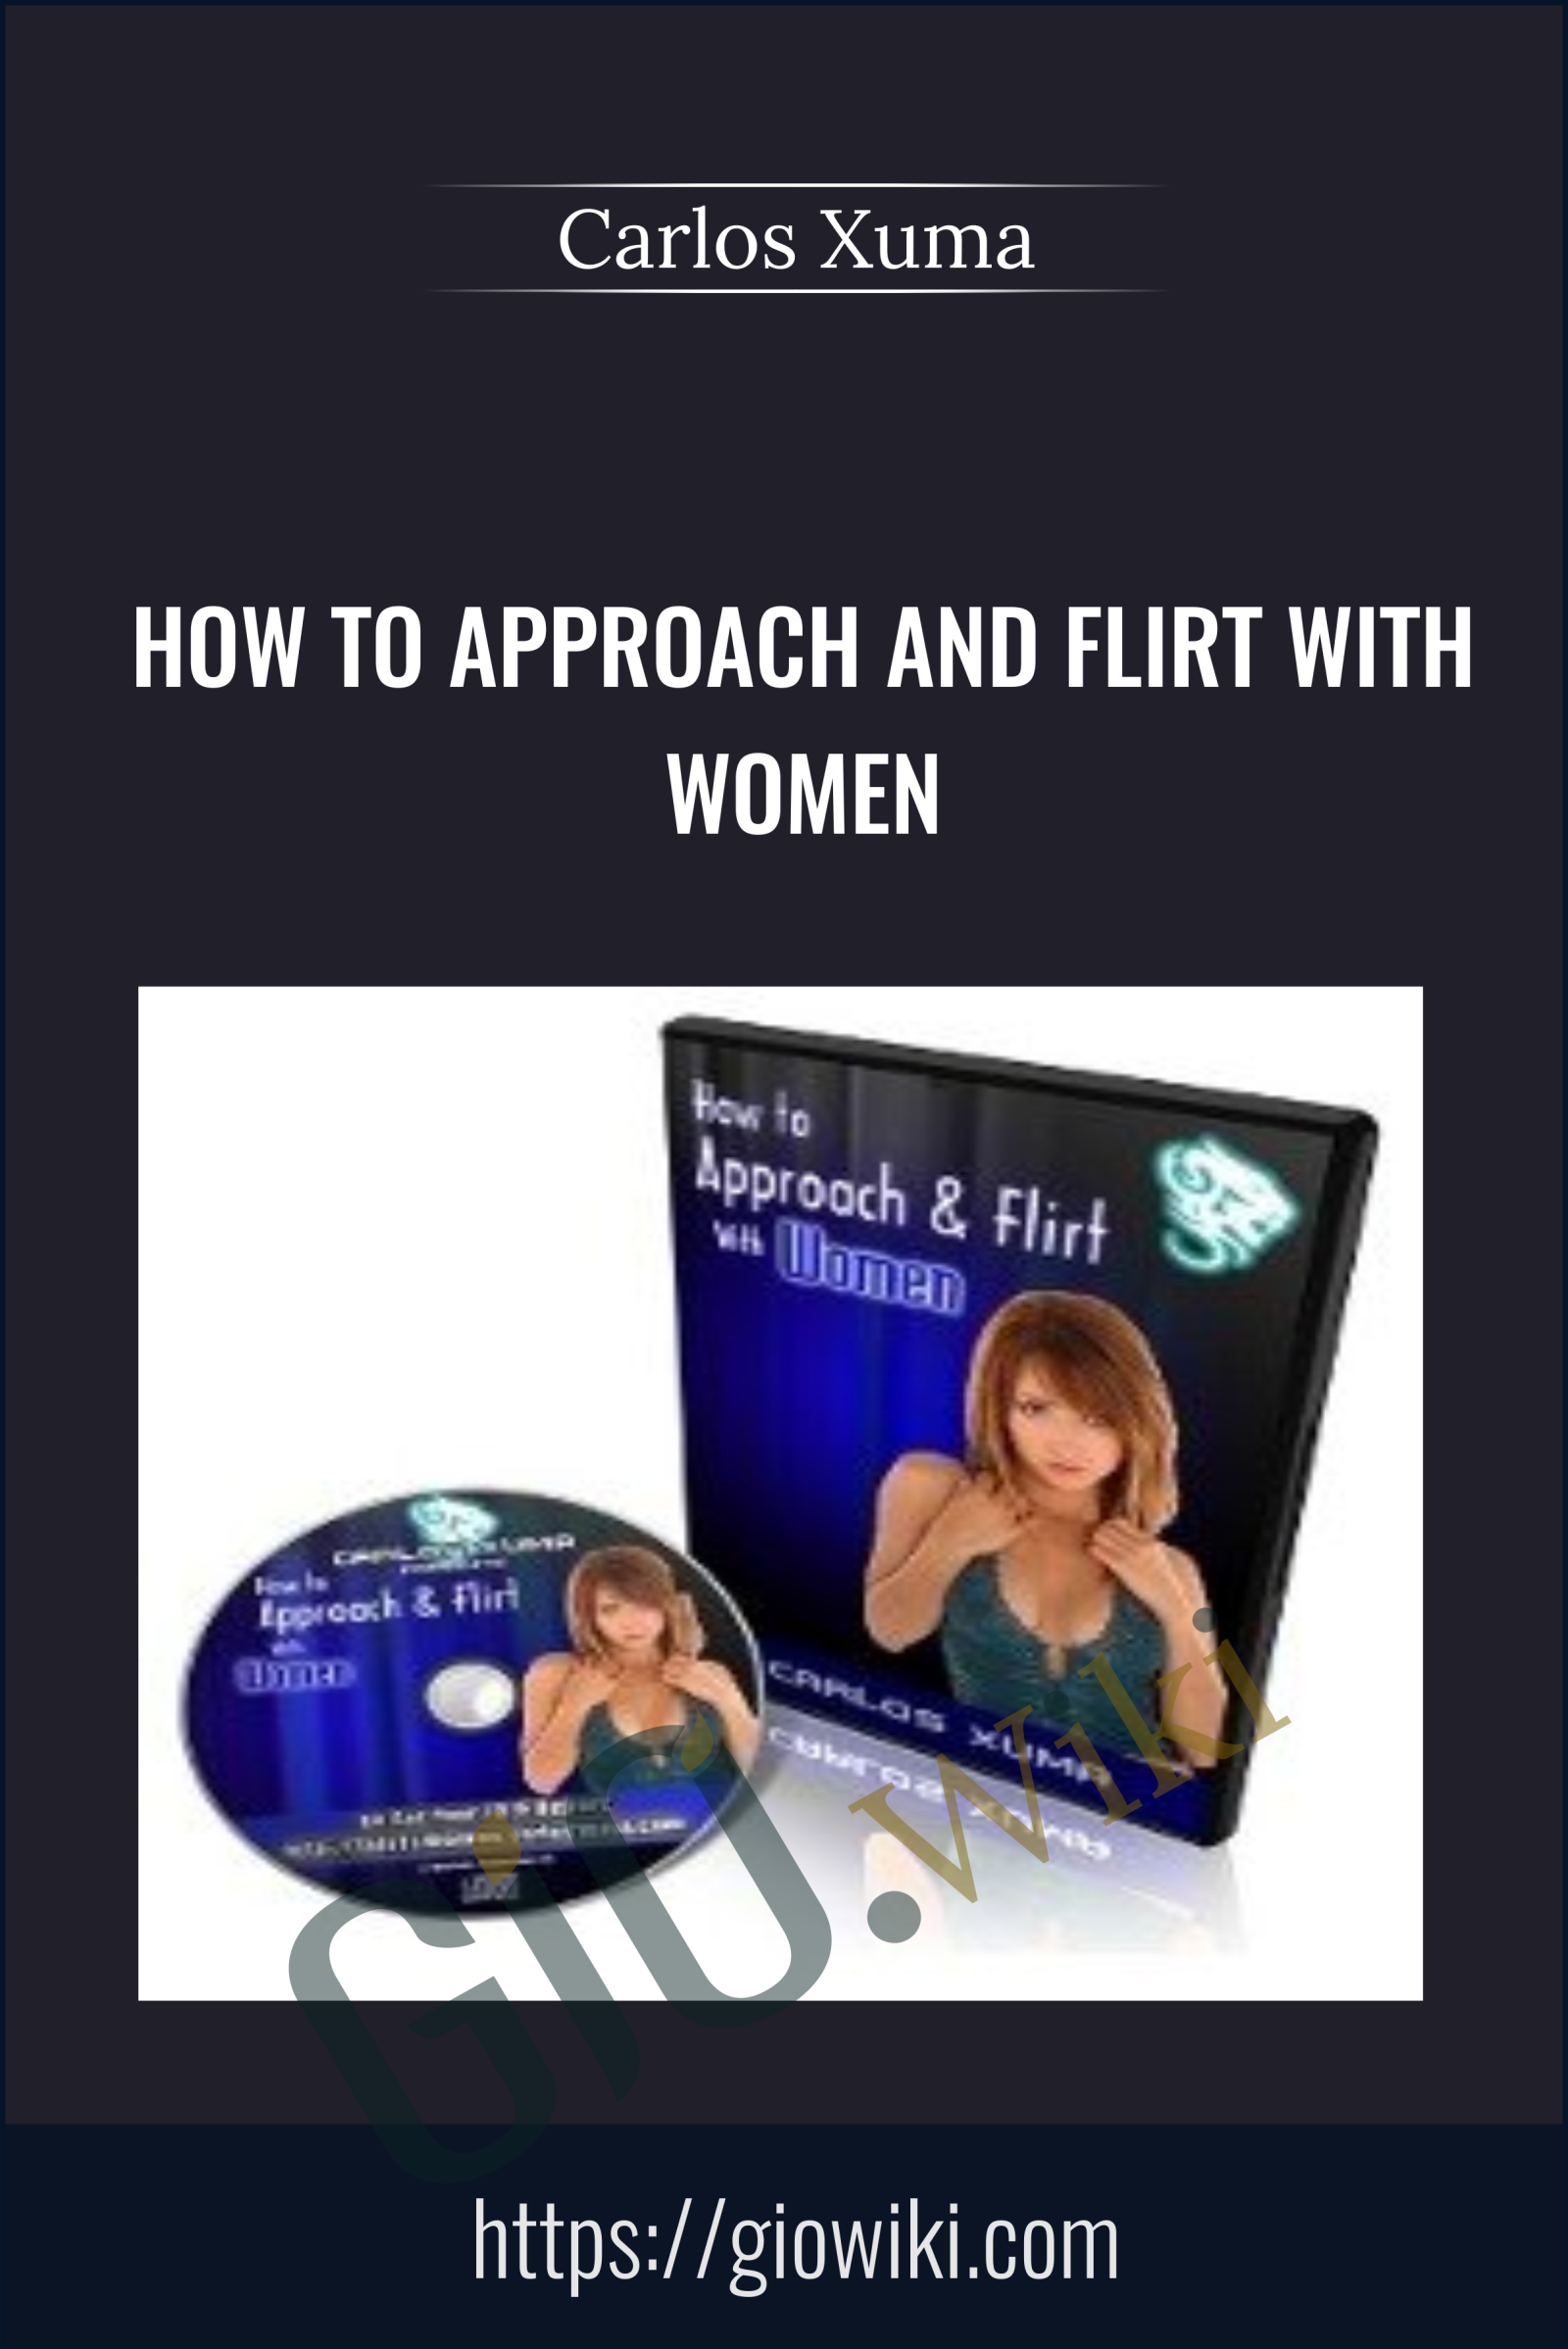 How To Approach and Flirt with Women - Carlos Xuma